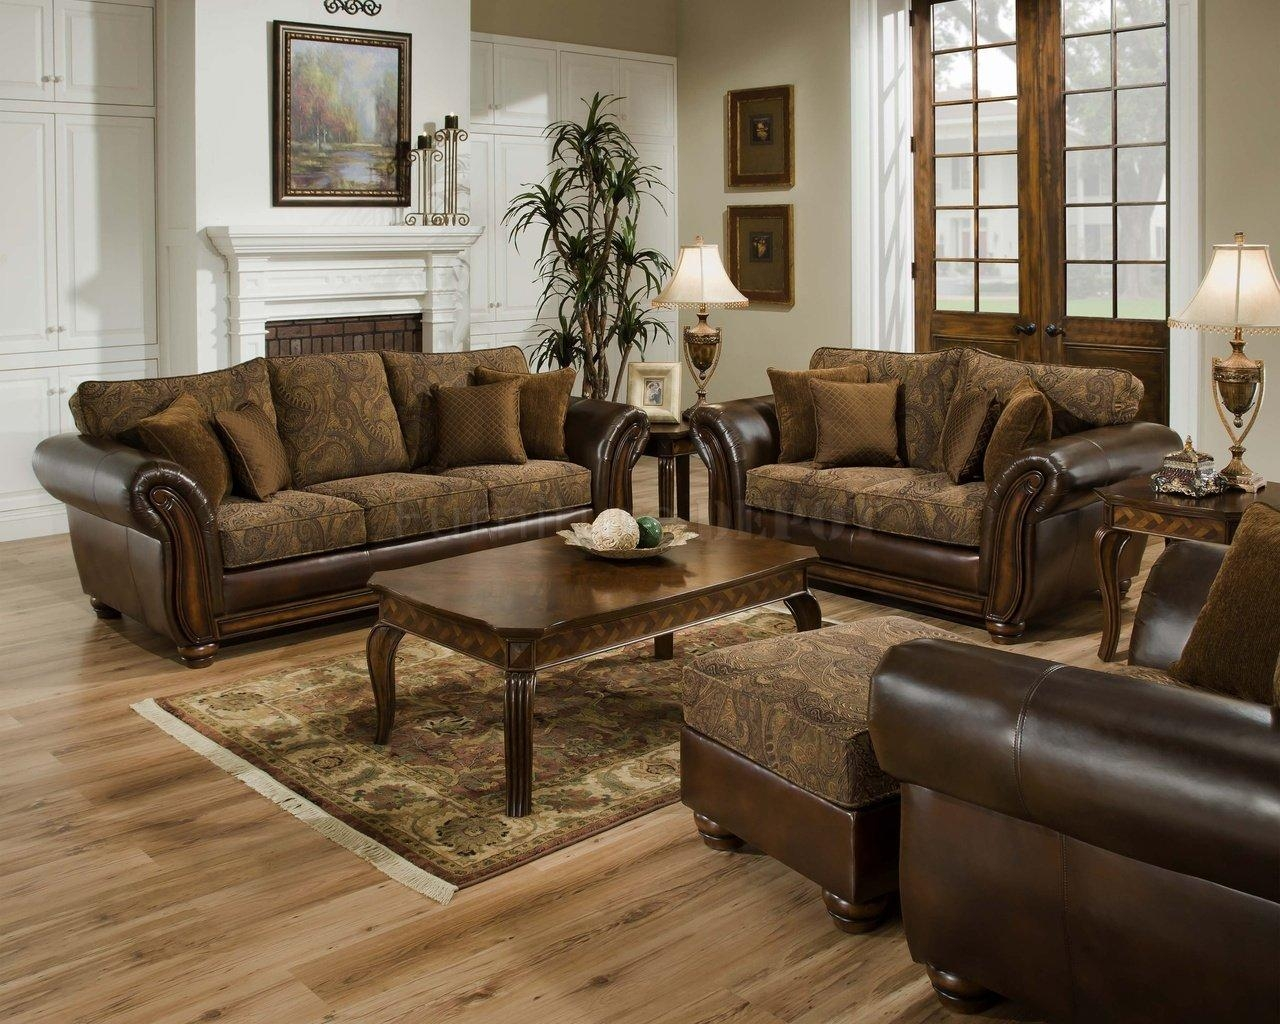 Black Leather Sofa And Loveseat Set | Tehranmix Decoration Intended For Black Leather Sofas And Loveseat Sets (View 13 of 20)